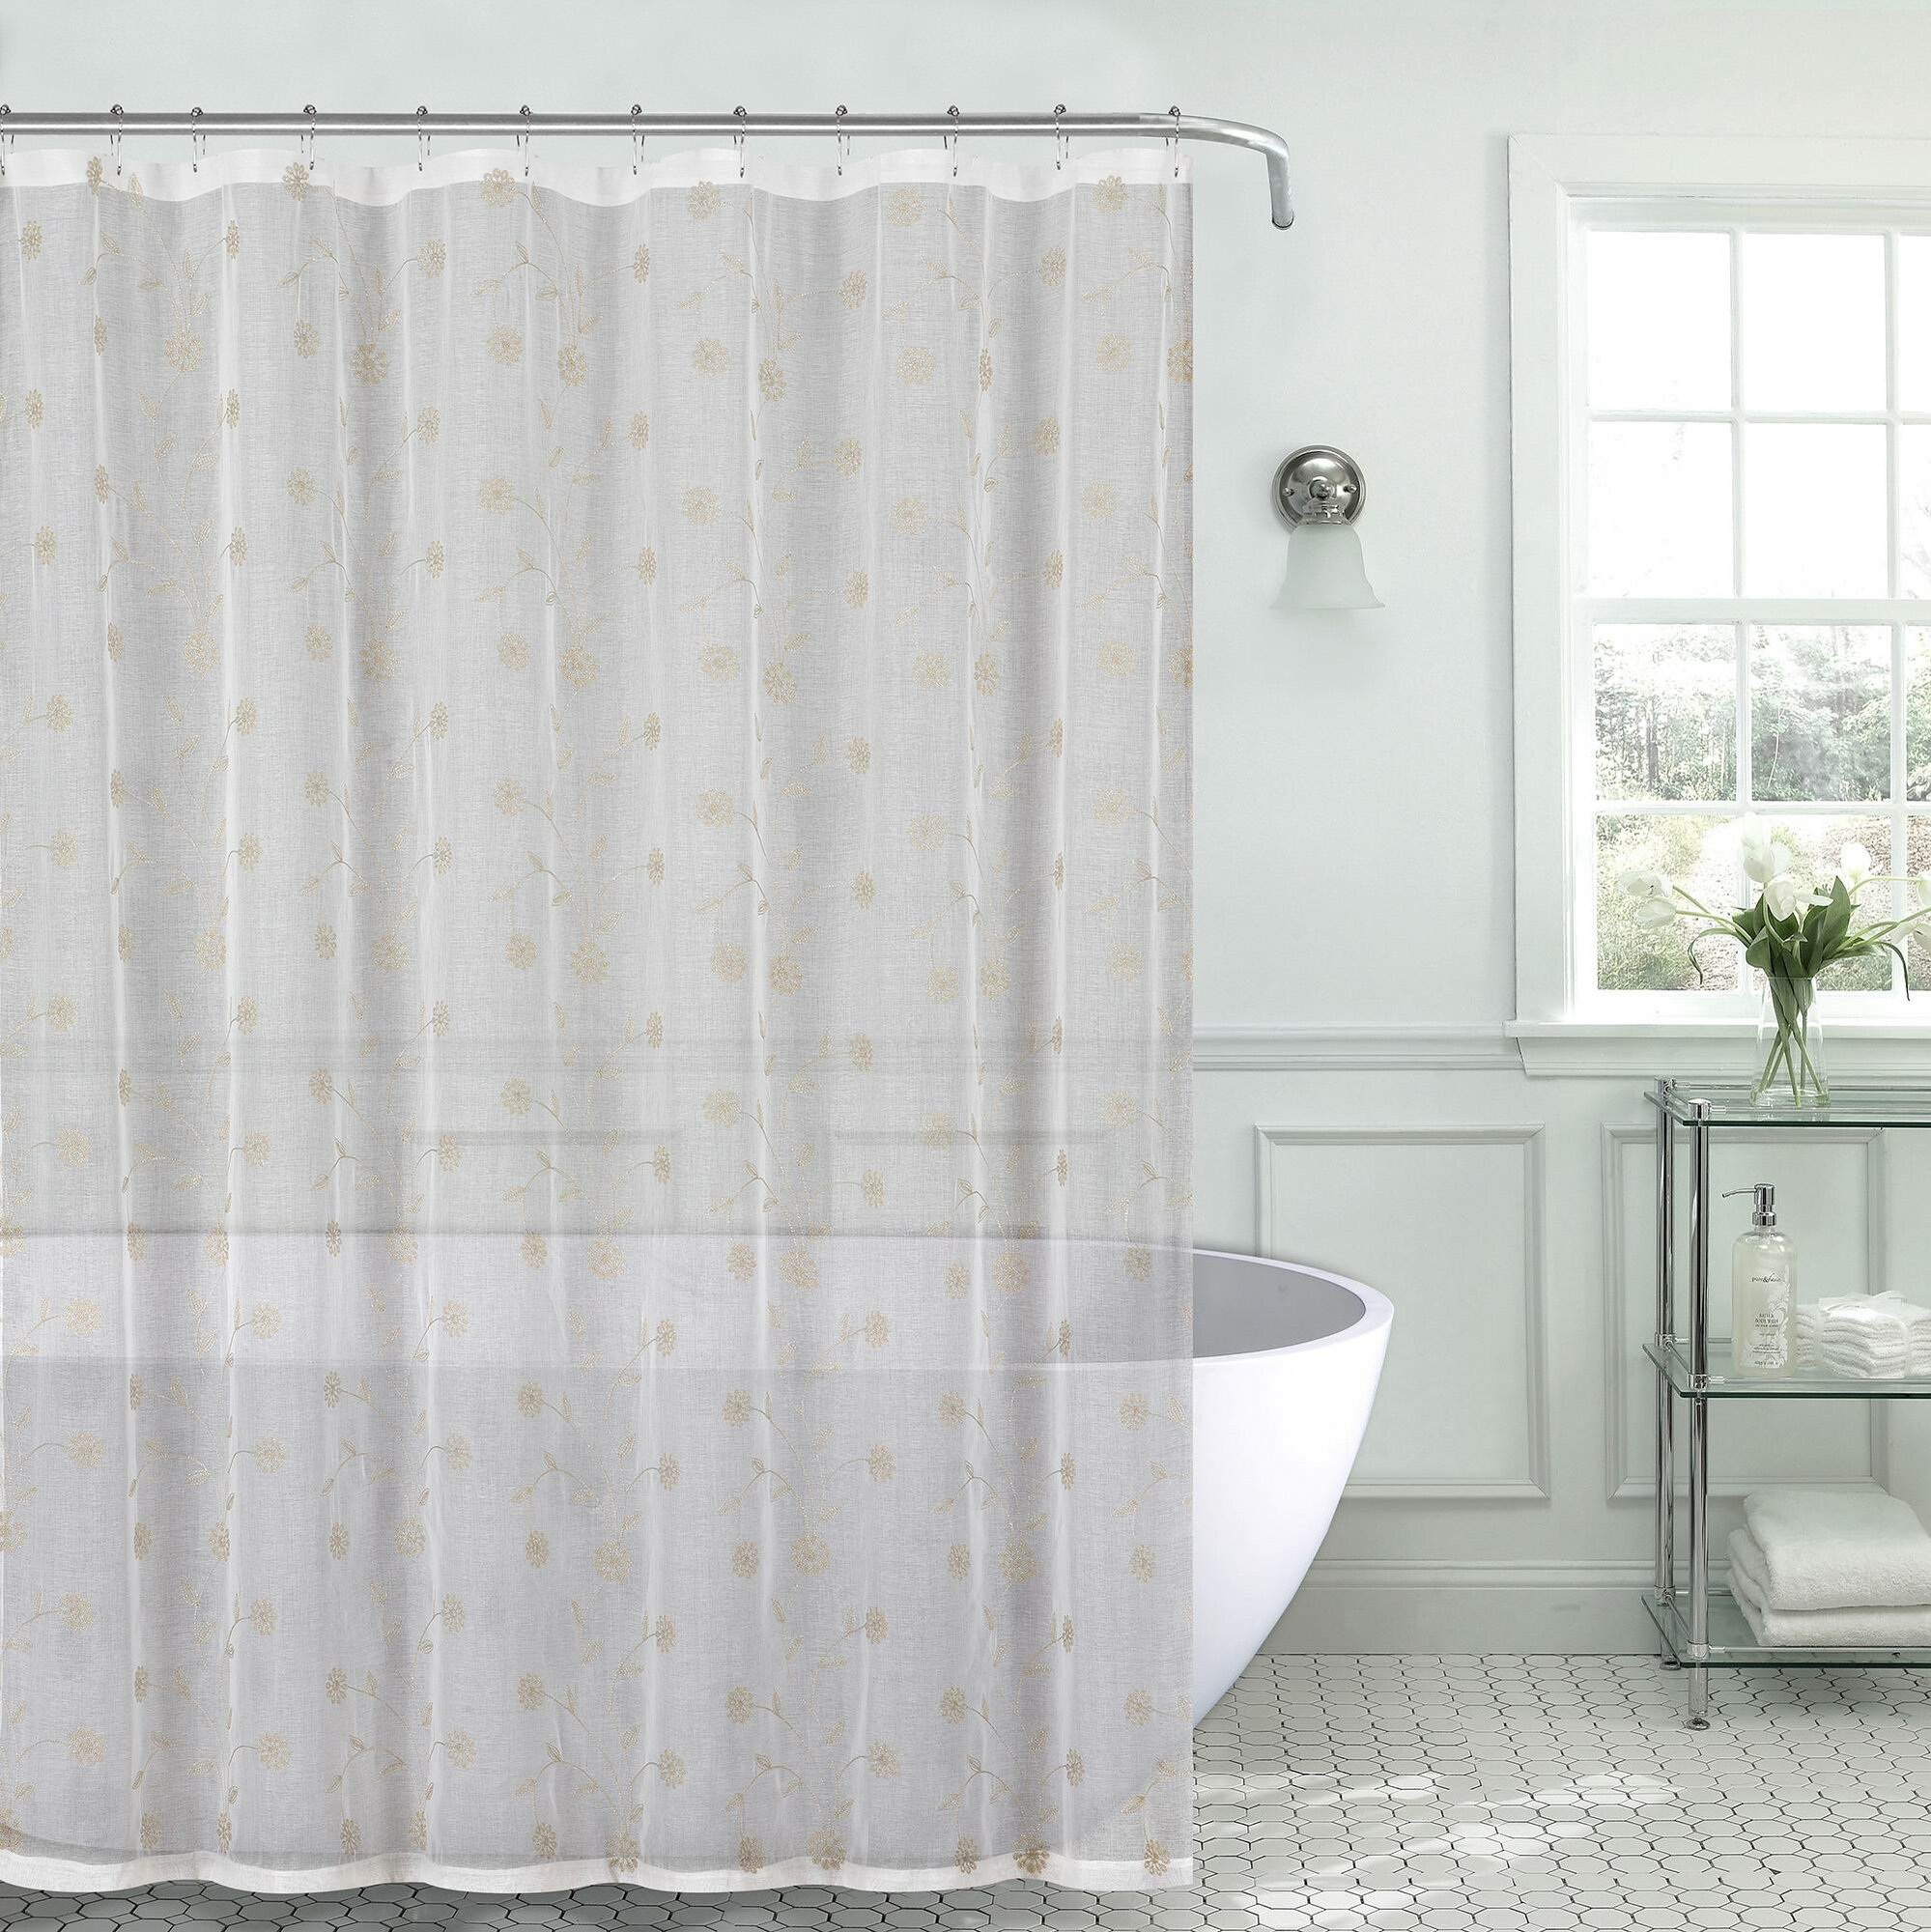 Details About Red Barrel Studio Mirtha Metallic Daisy Embroidered Sheer Fabric Shower Curtain